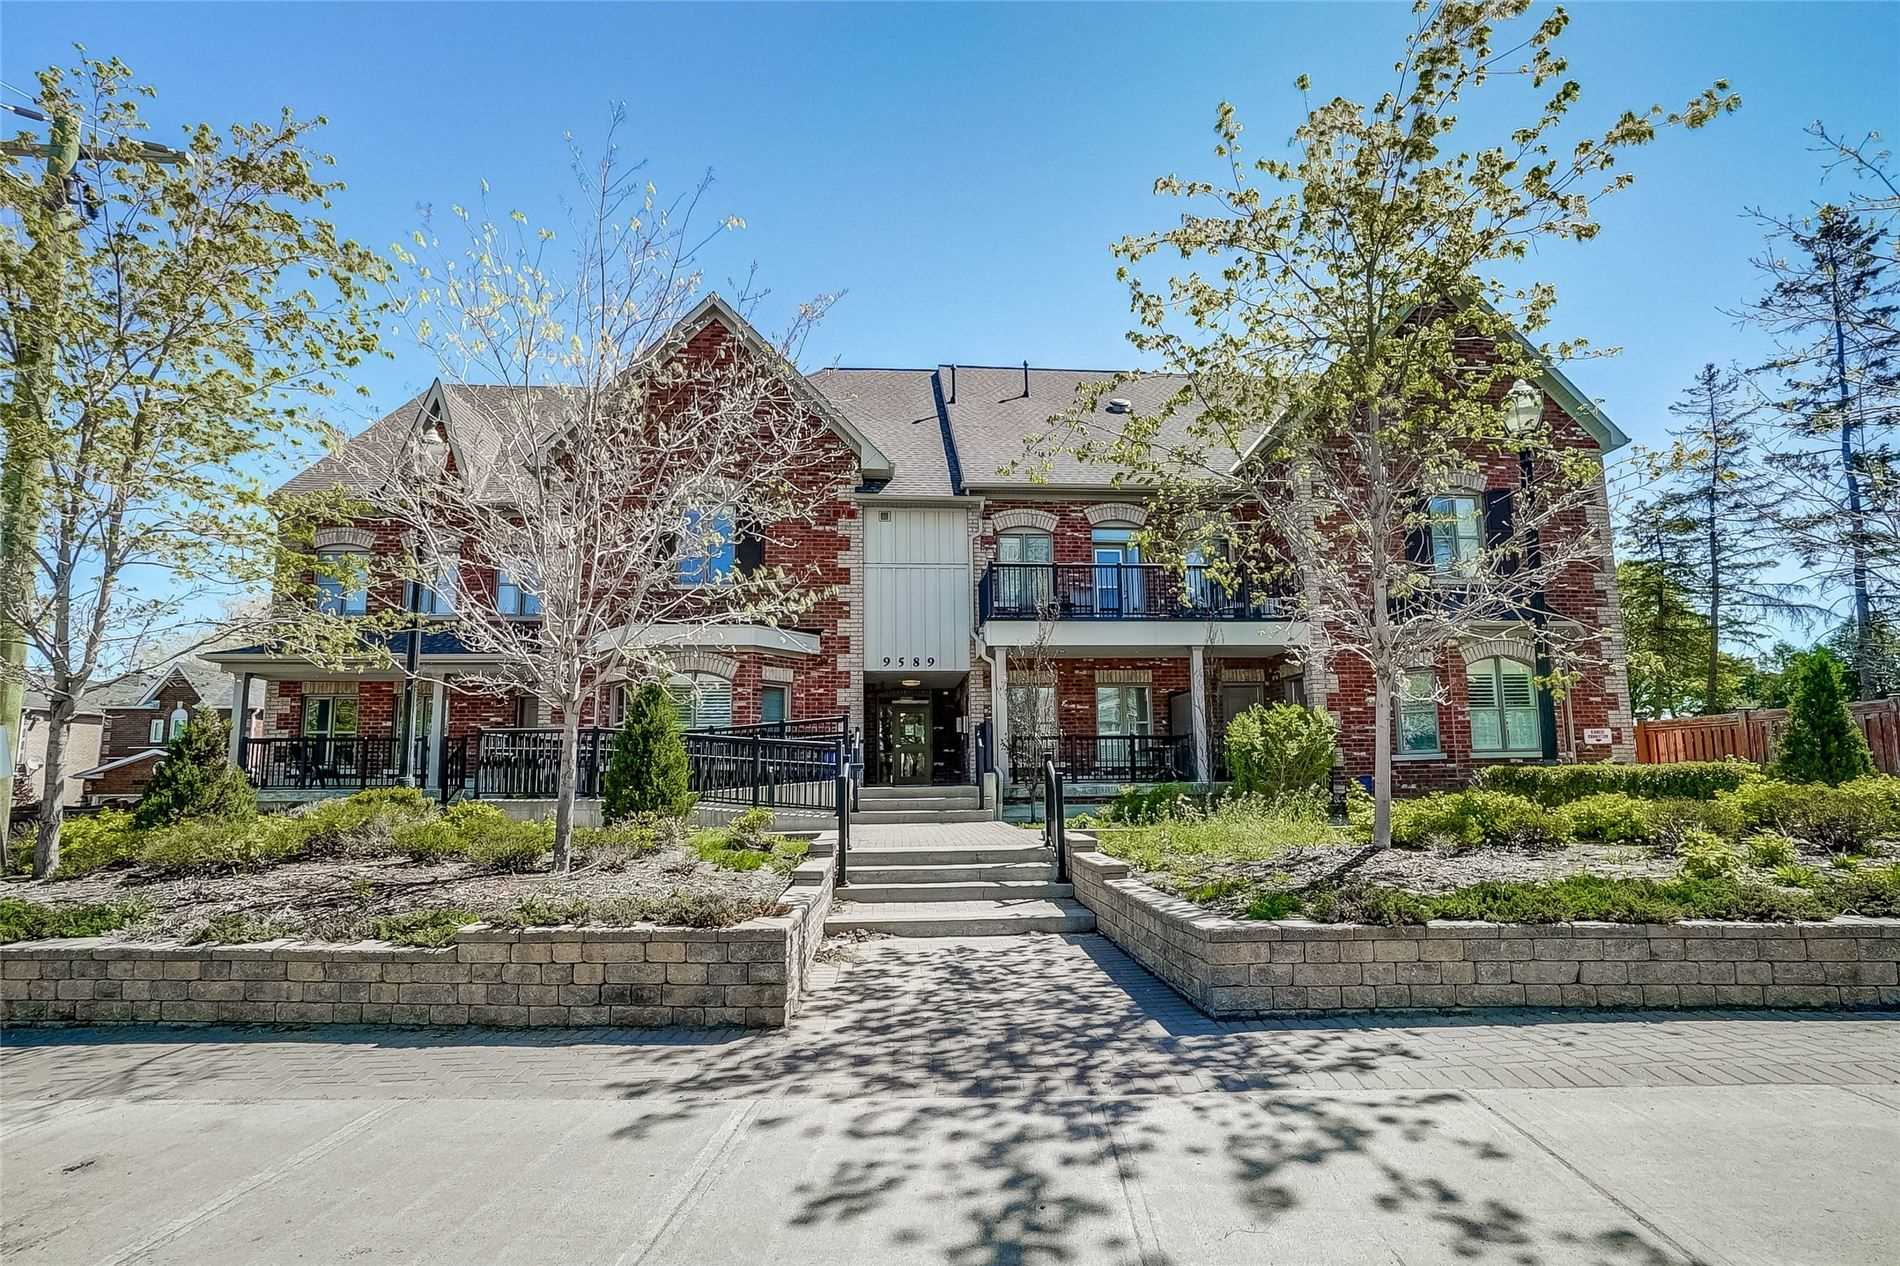 pictures of 9589 Keele St, Vaughan L6A1M1